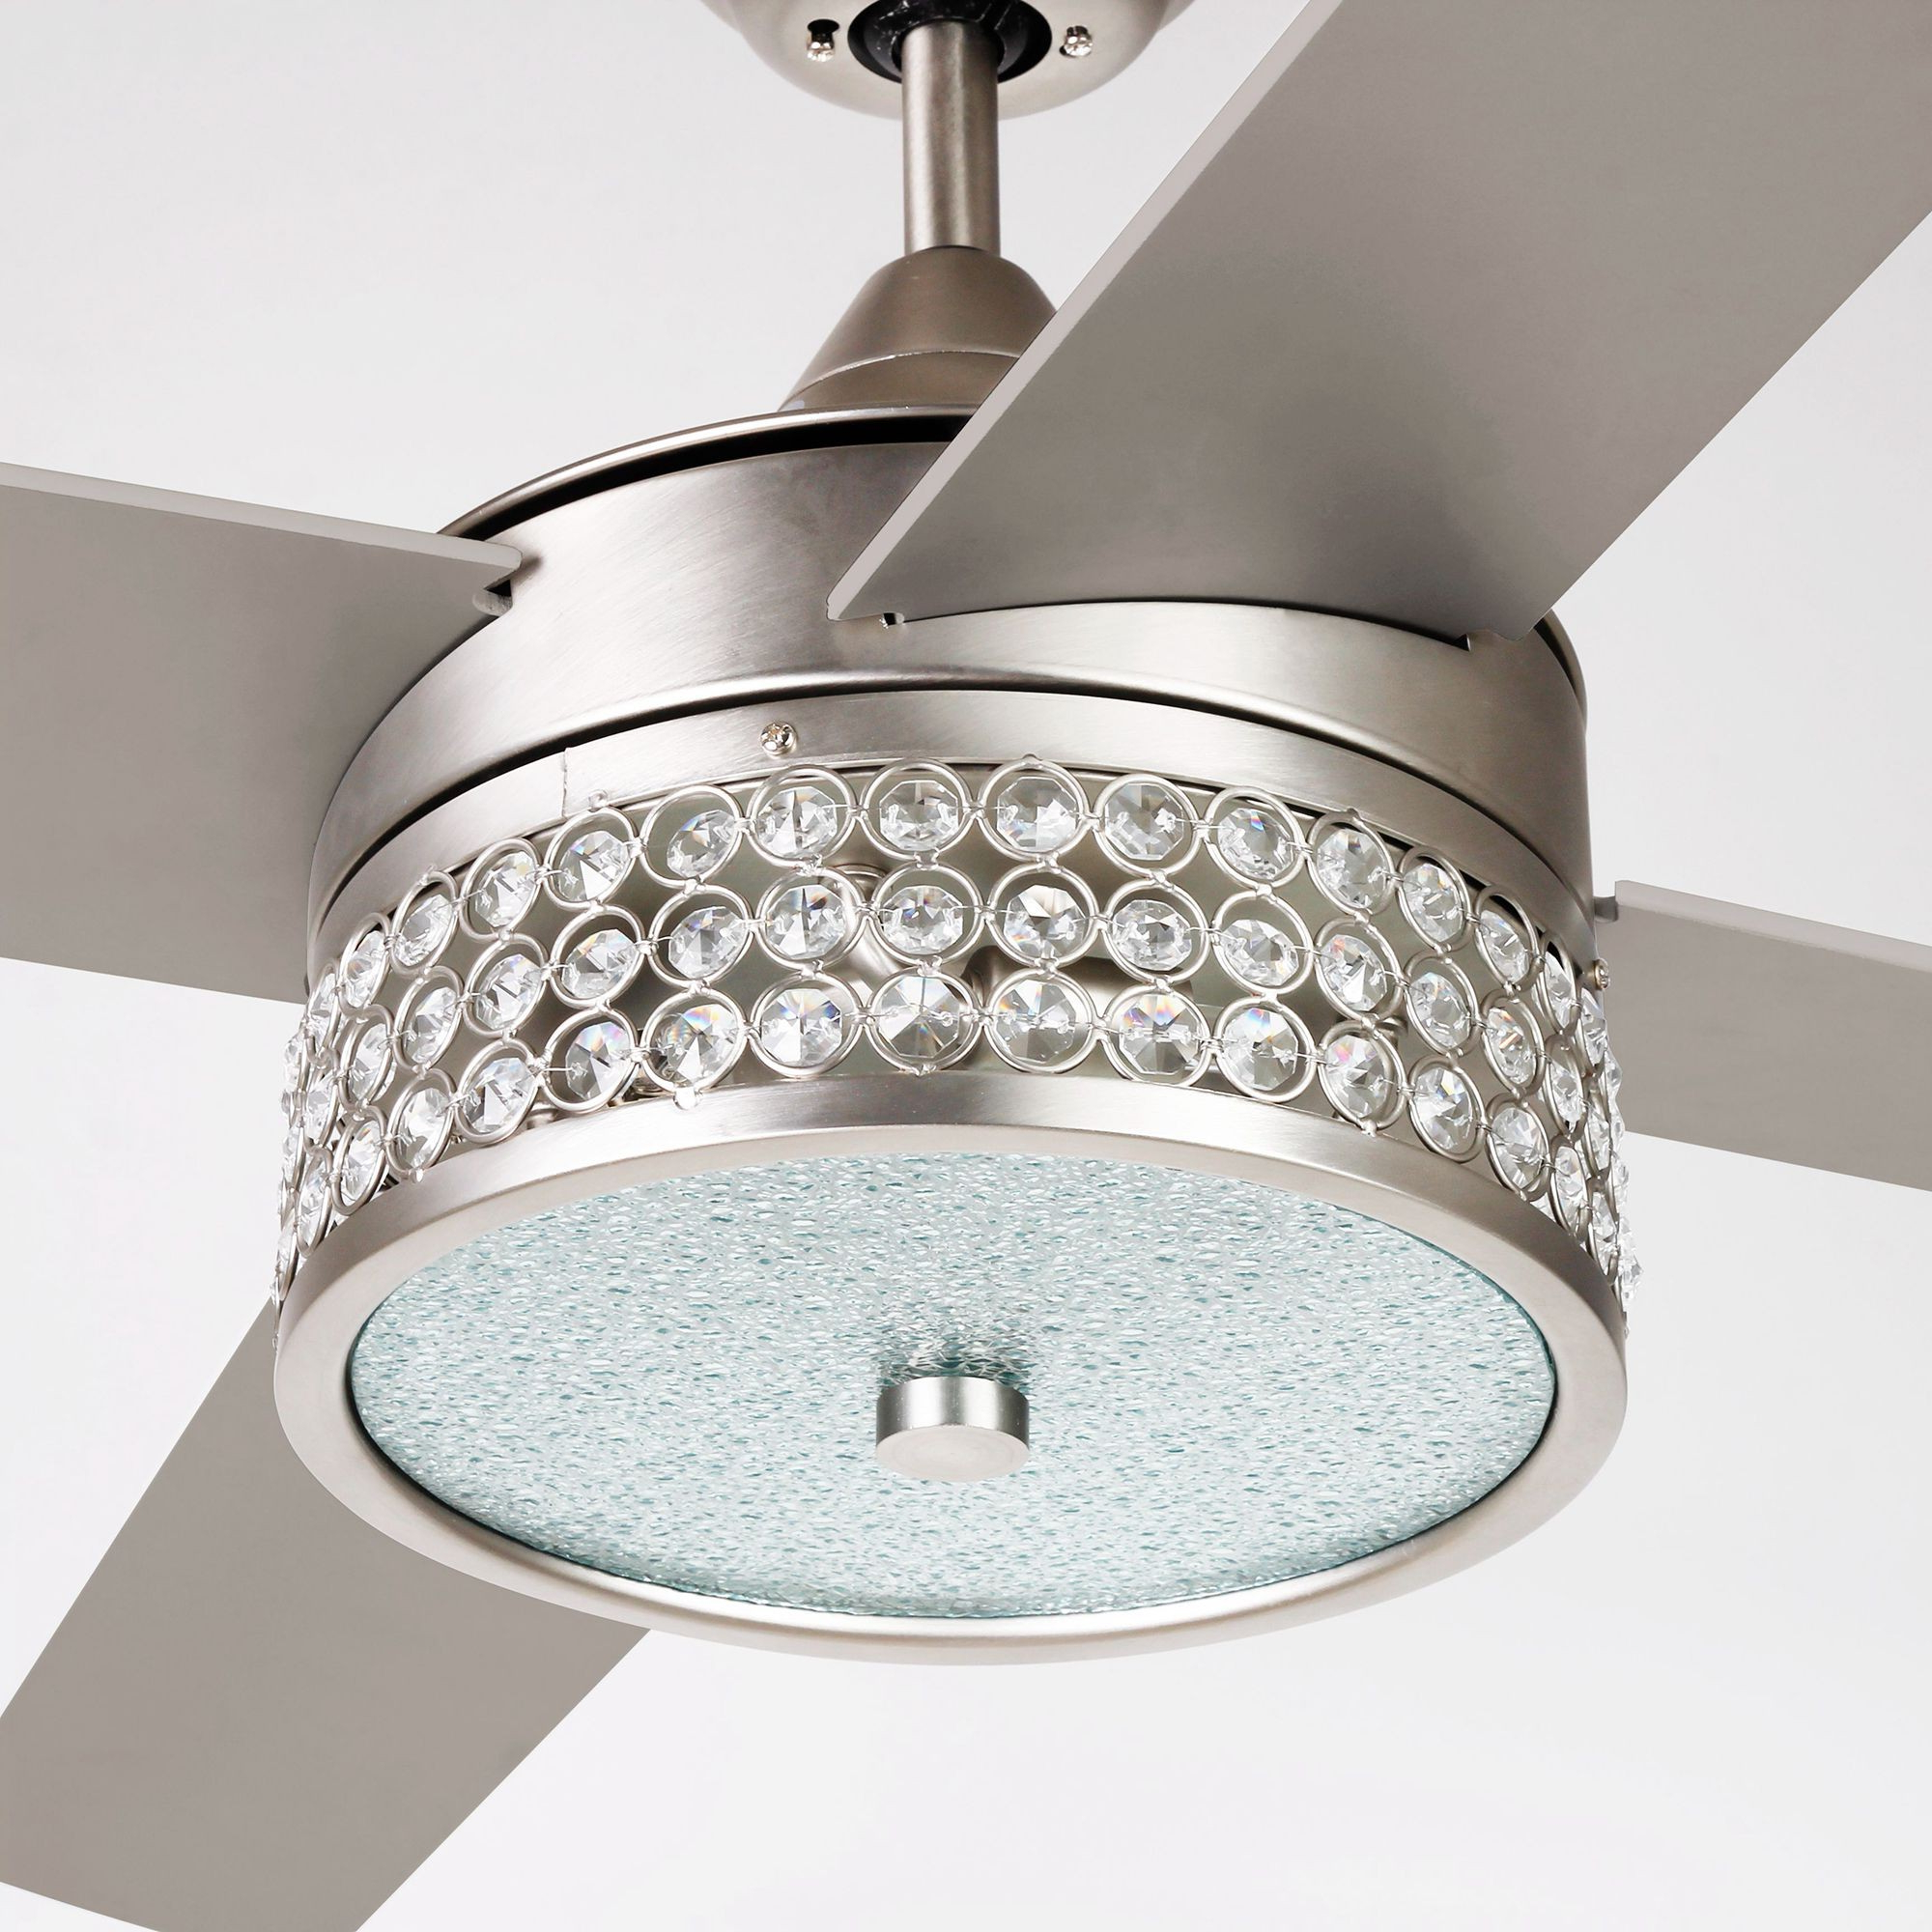 """Cason 4 Blade Ceiling Fans Pertaining To Favorite 52"""" Cason Modern Crystal Chandelier Ceiling Fan With Led Light And Remote  Control, 4 Blades, Satin Nickel (View 6 of 20)"""